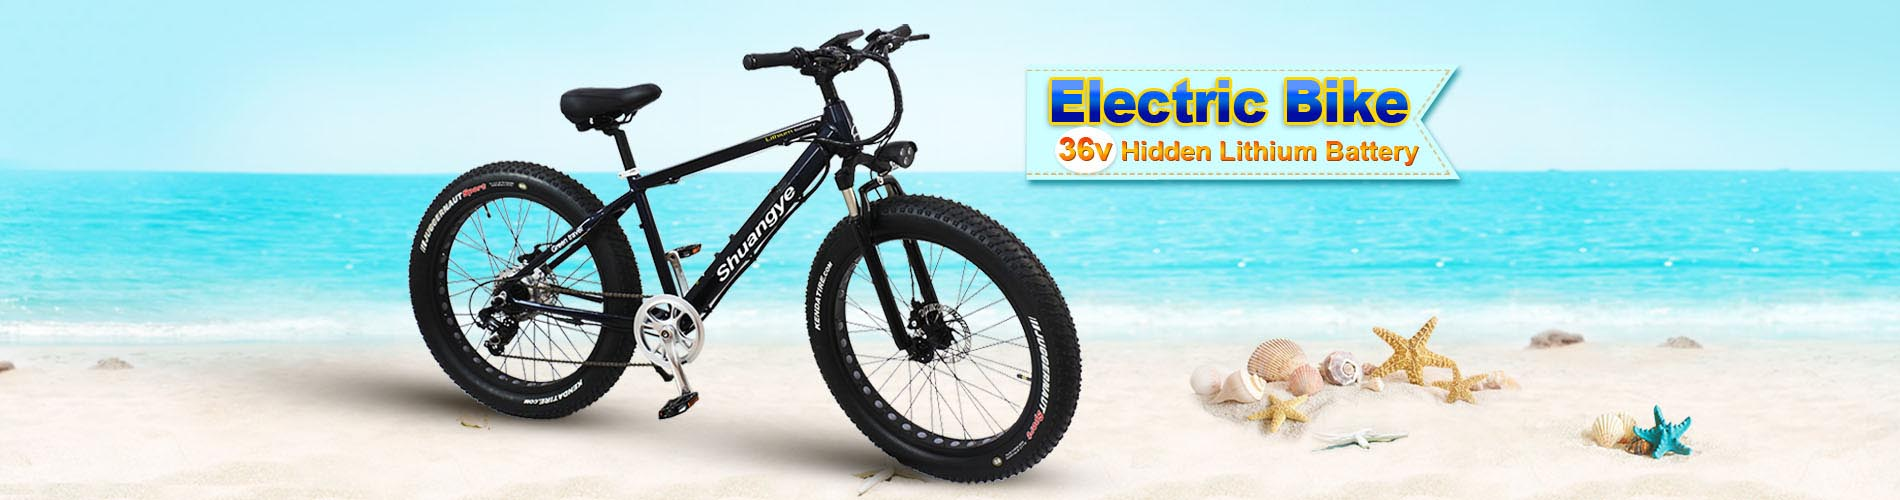 shuangye electric bike advantage